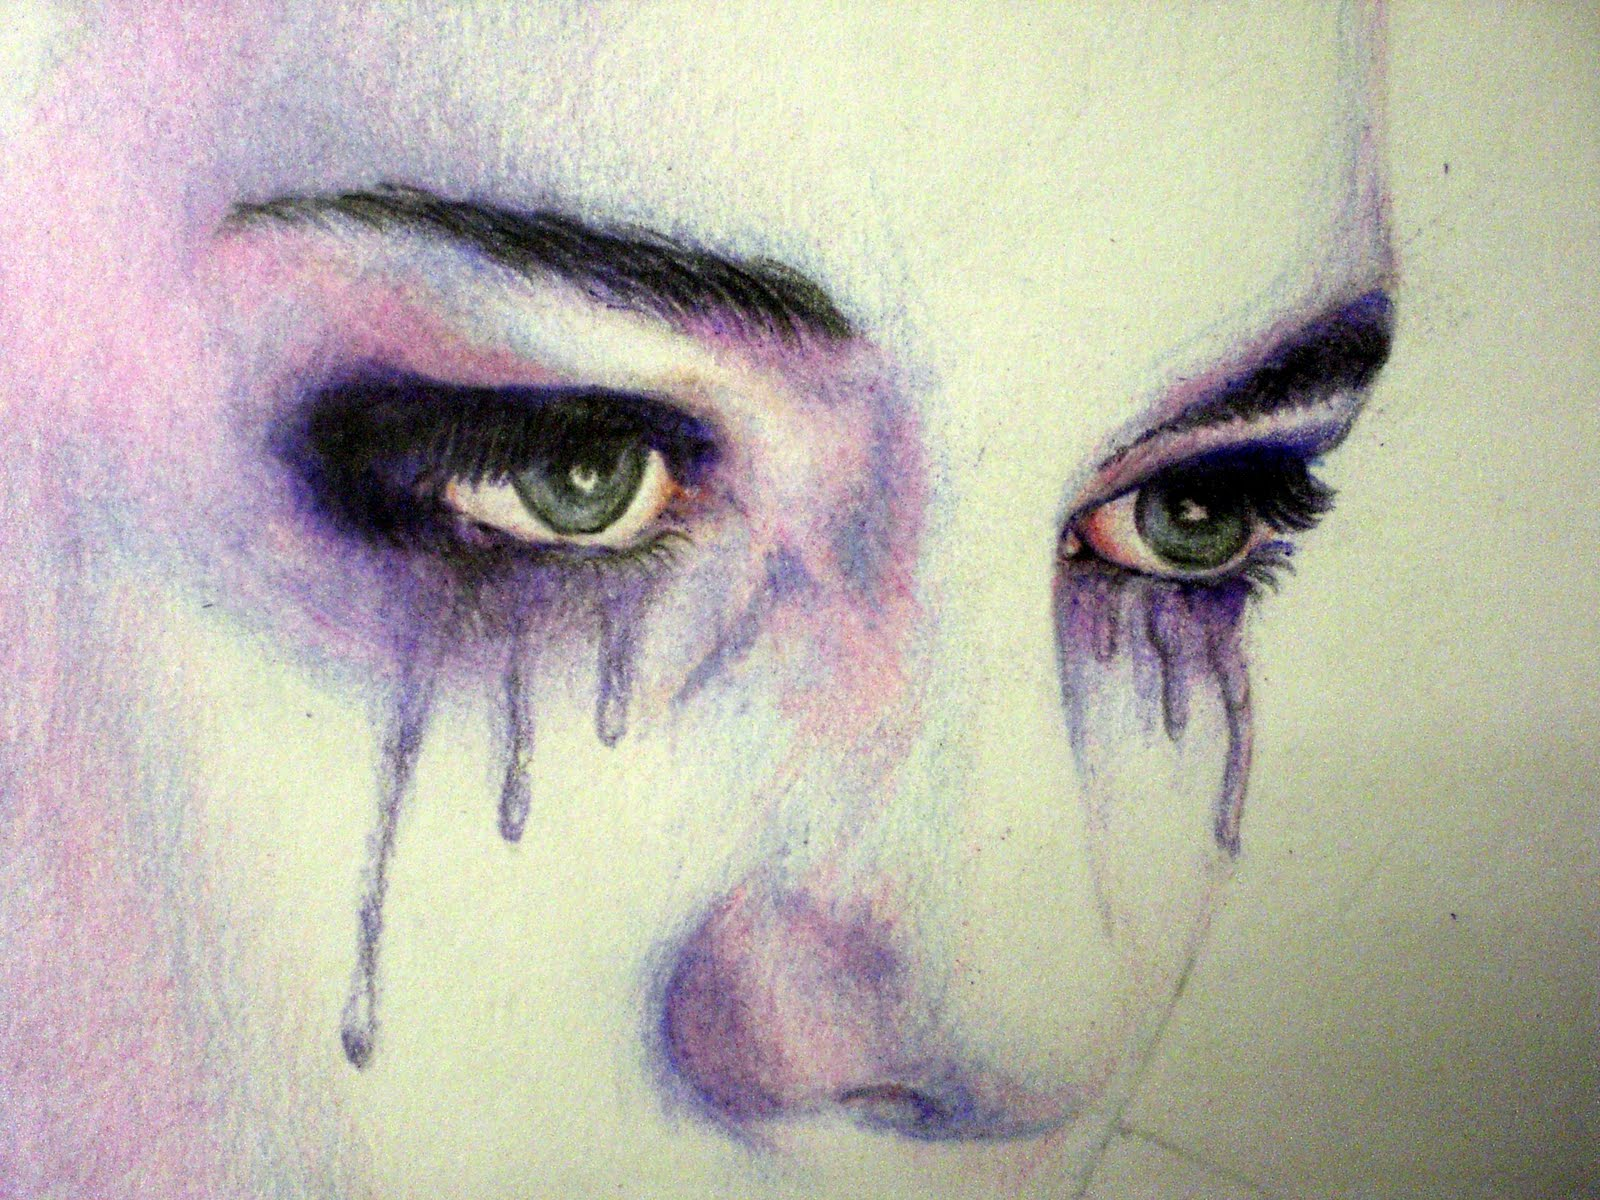 Crying man paintings